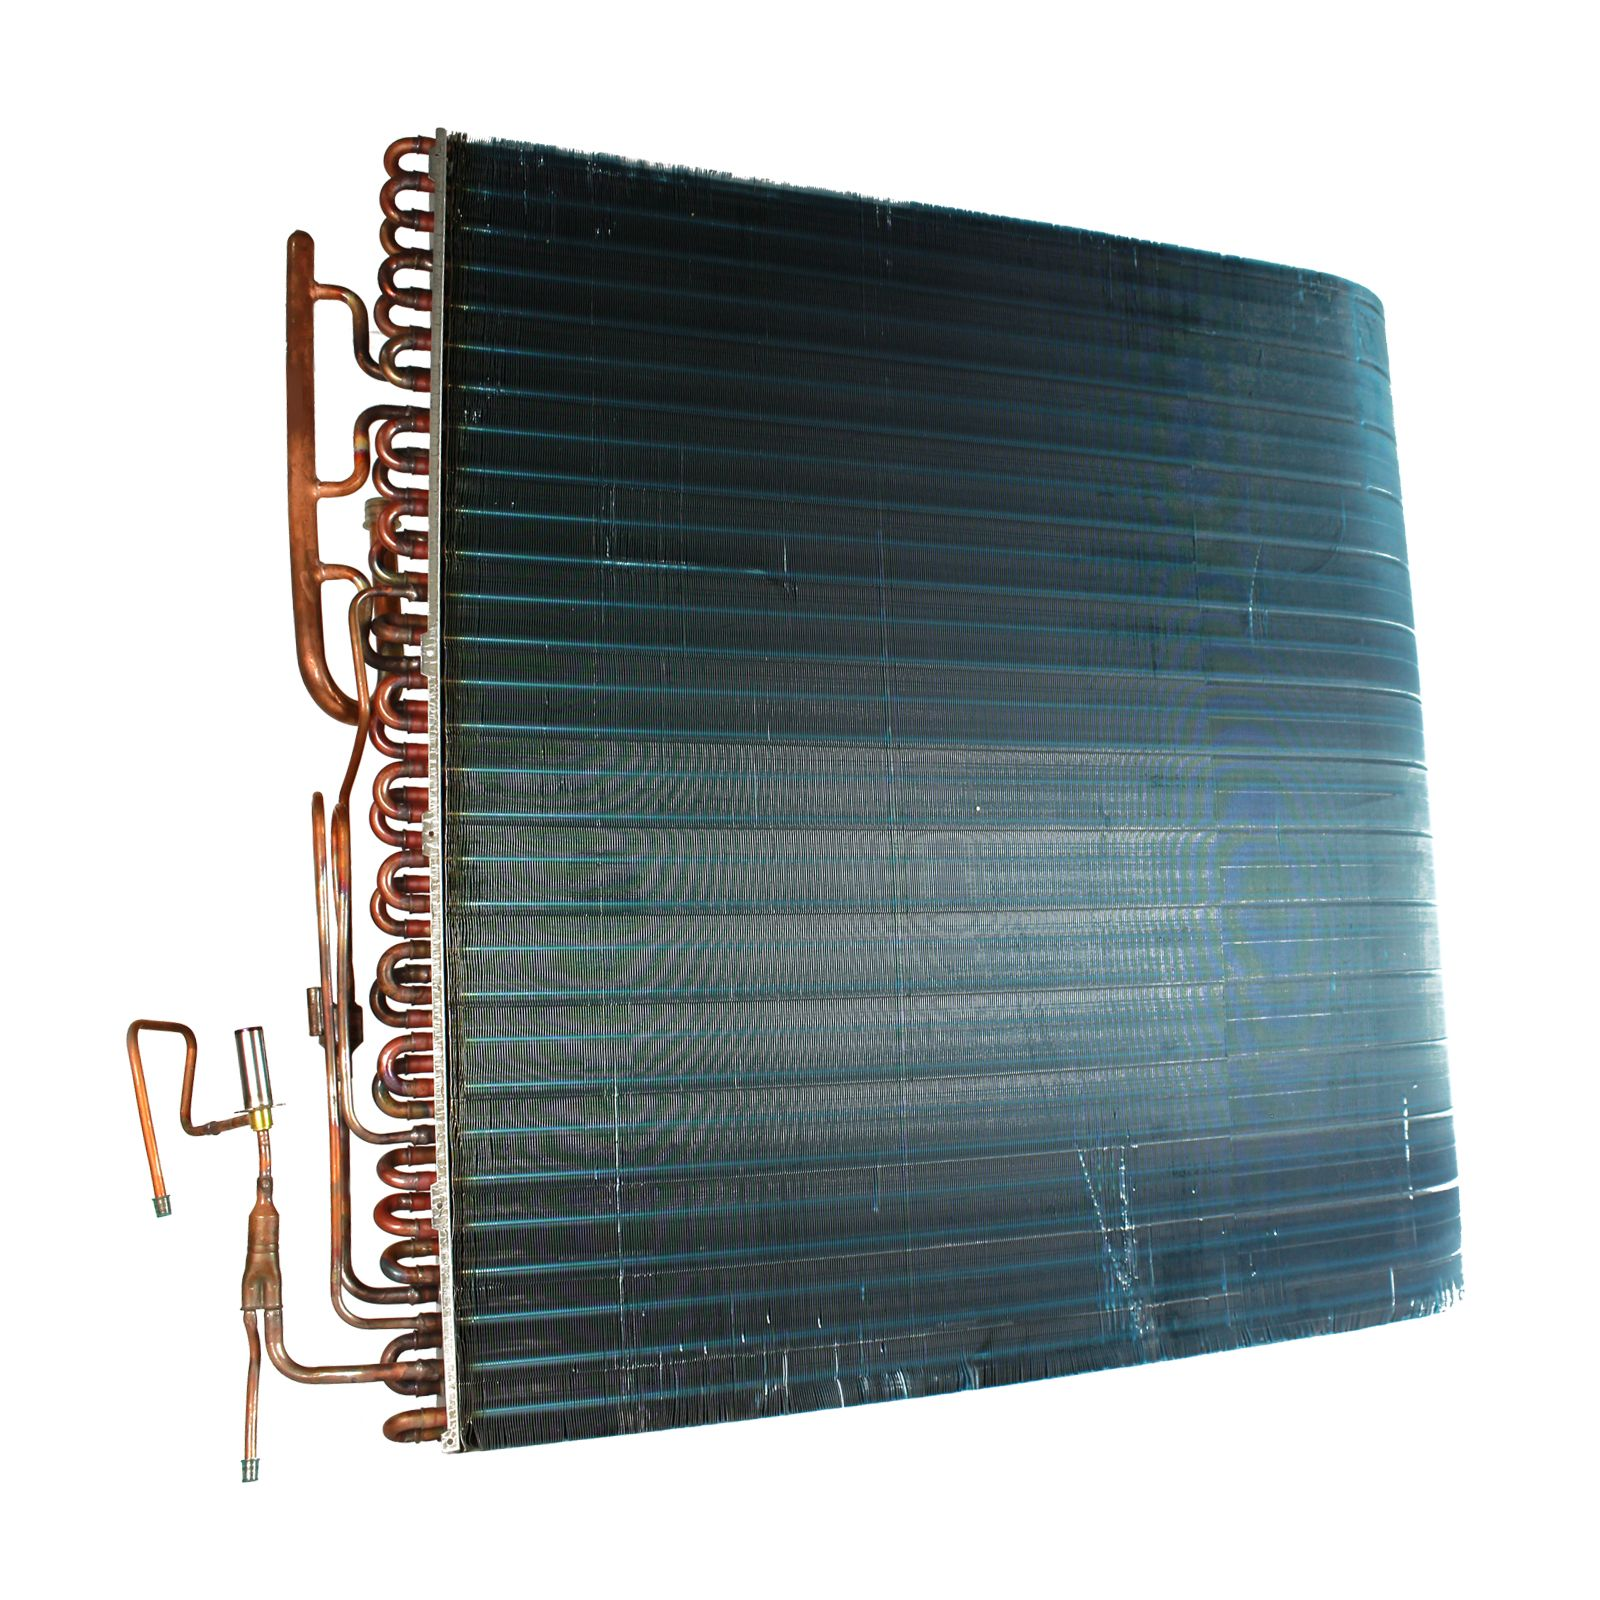 GREE 01163491 - Condenser Coil Assembly